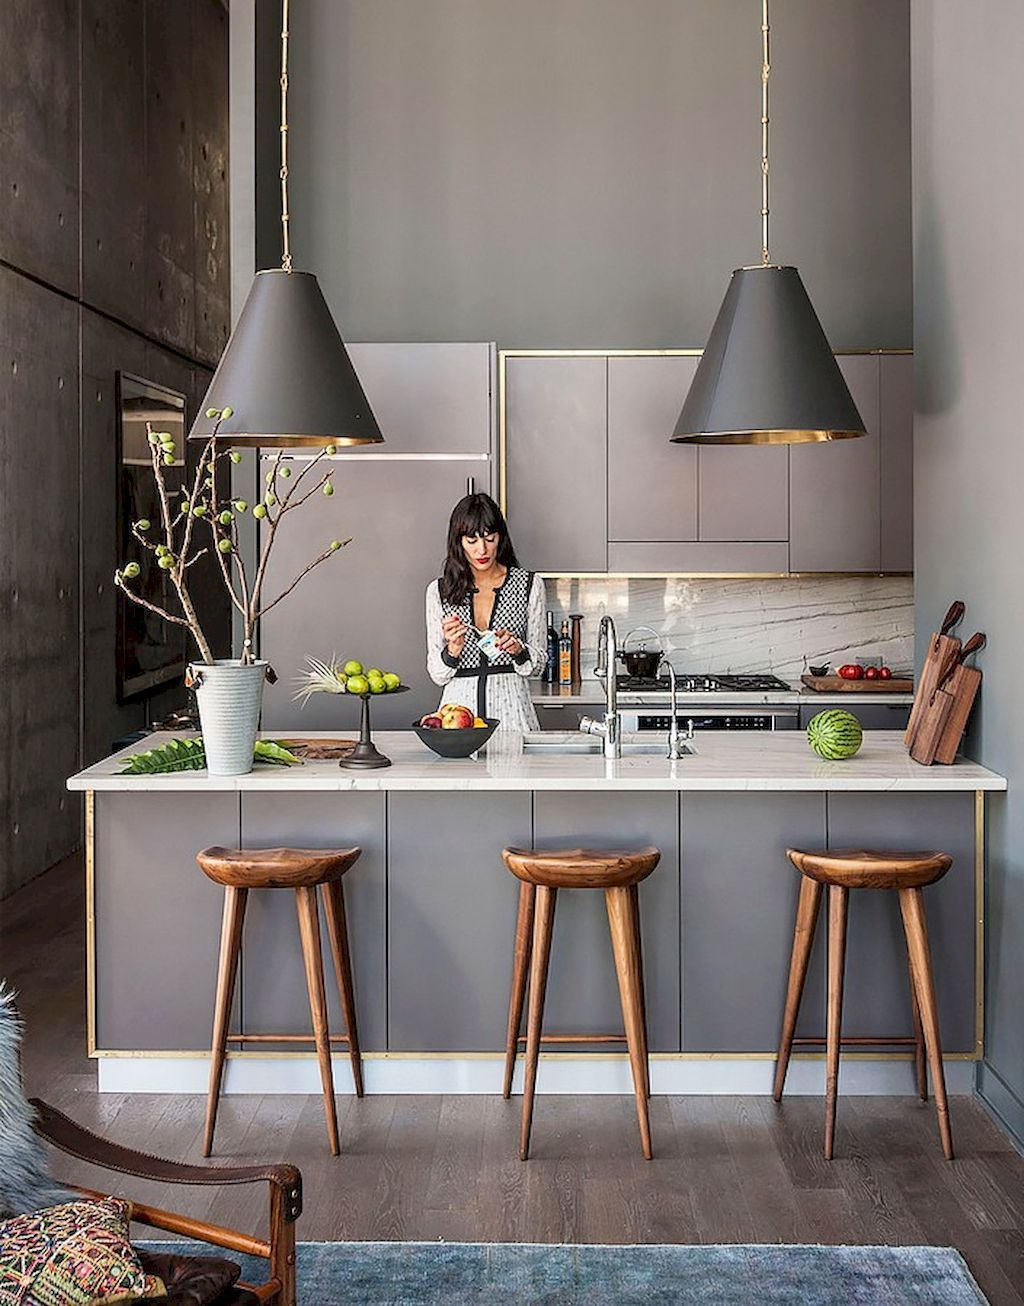 Pin by melissa cantuk on apartment in pinterest kitchen